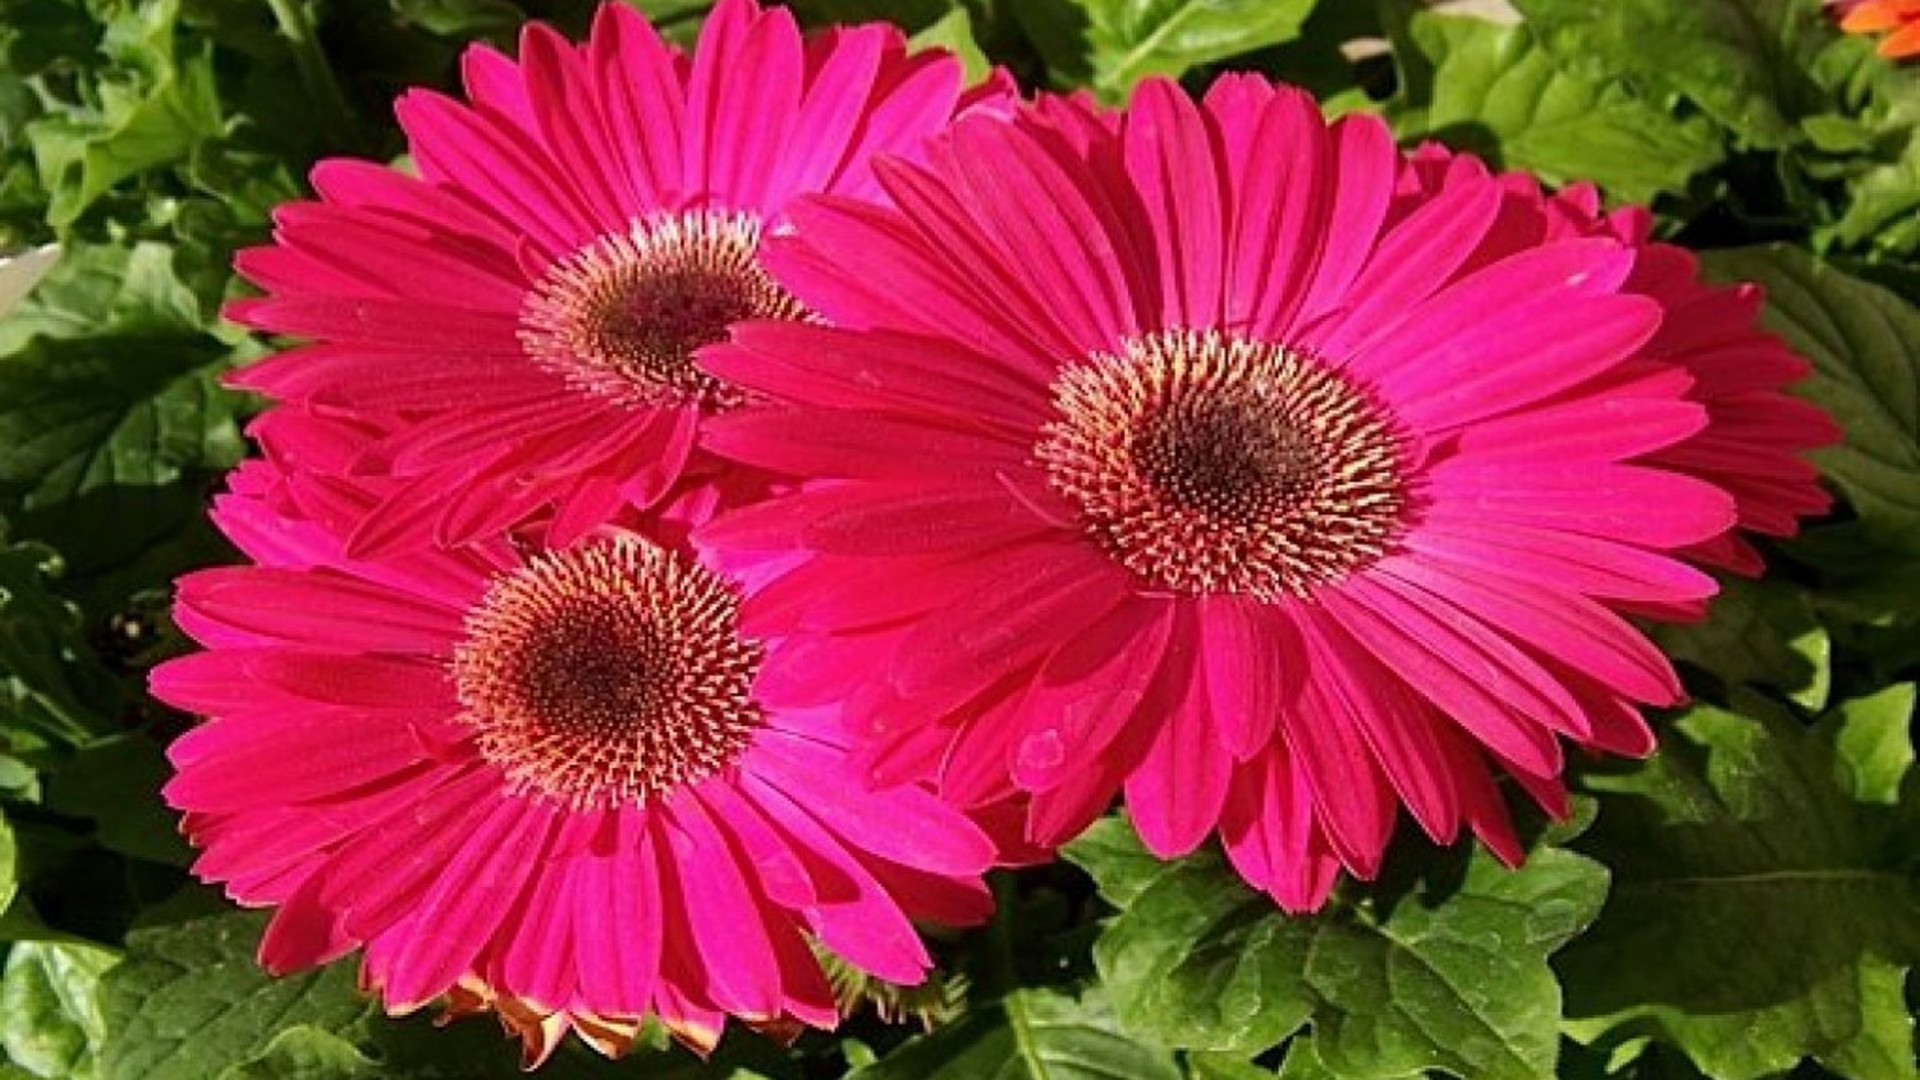 Light Pink Daisies Wallpaper Light Pink Gerbera Daisy Pink 1920x1080